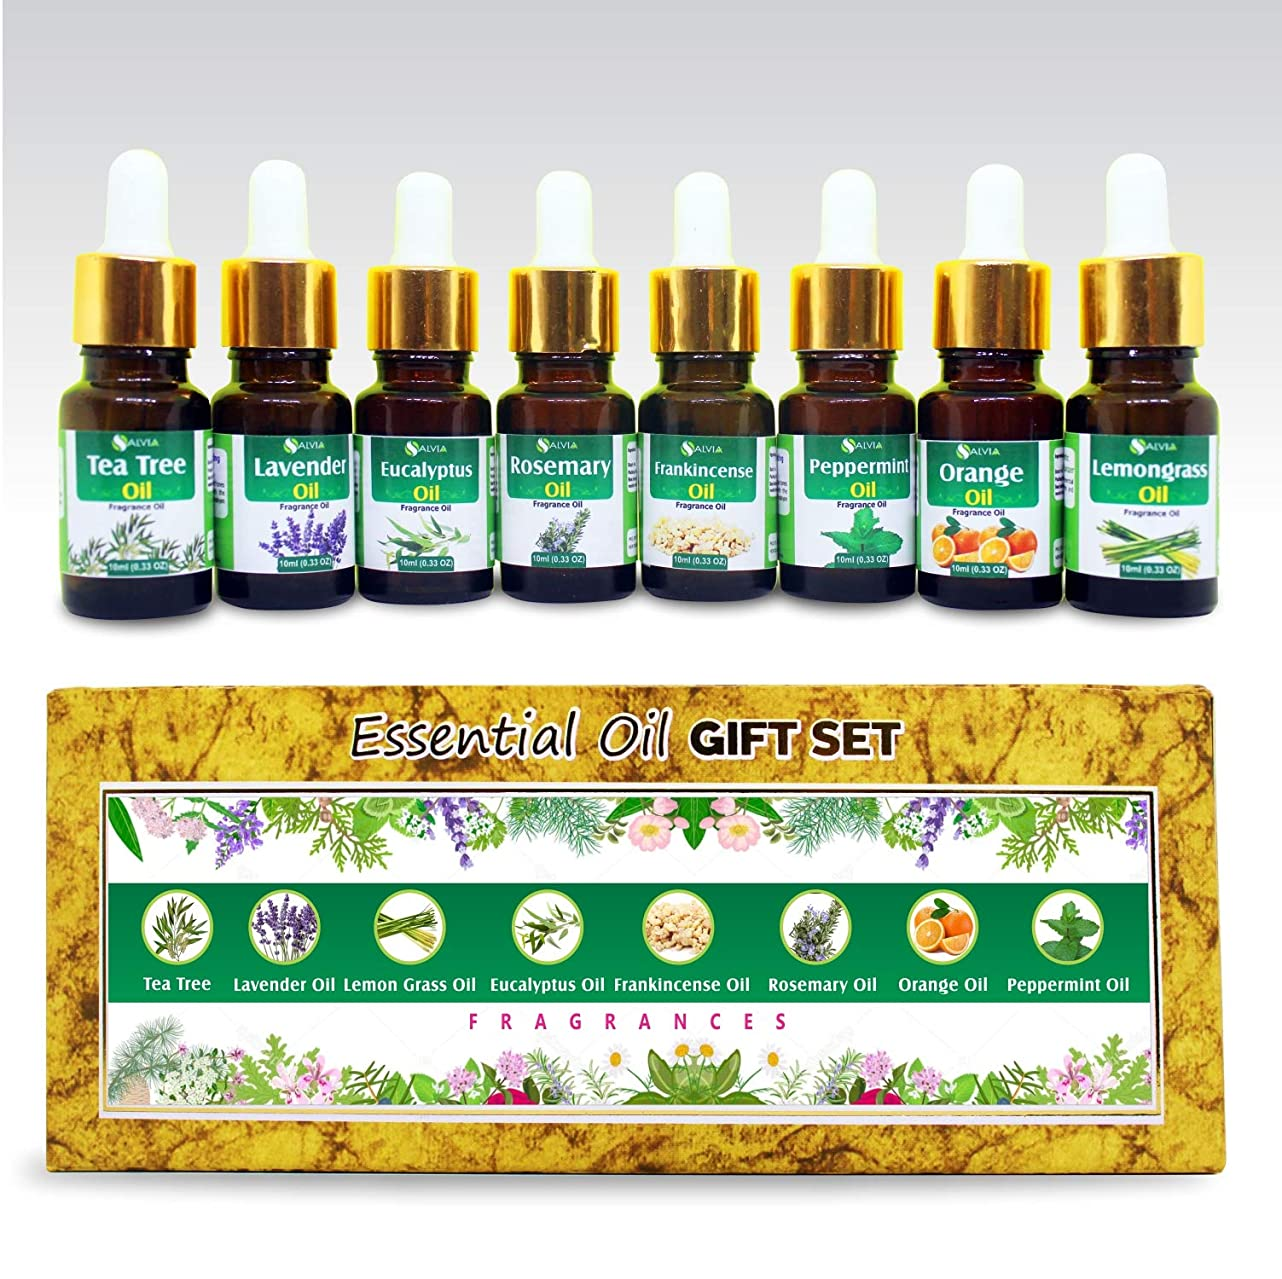 クライストチャーチ便宜シンボルAromatherapy Fragrance Oils - Pack of 8 Essential Oils 100% Natural Therapeutic Oils - 10 ML each (Tea Tree, Lavender, Eucalyptus, Frankincense, Lemongrass, Rosemary, Orange, Peppermint) Gift Set